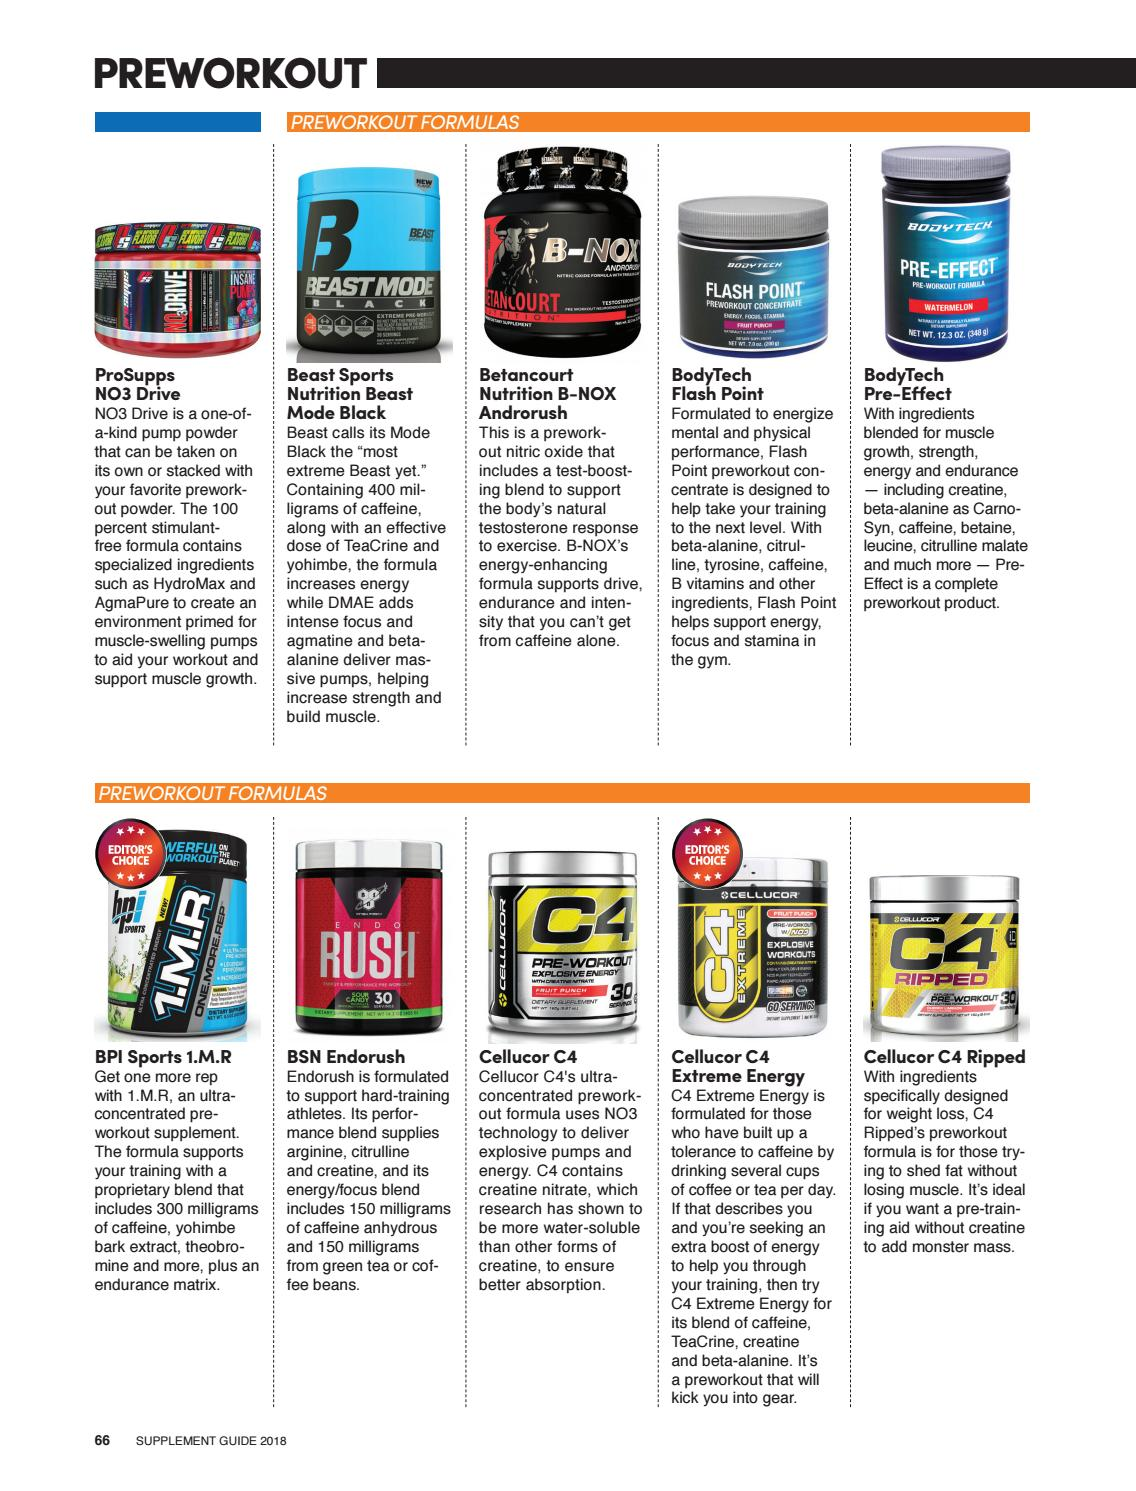 Flashpoint Pre Workout : flashpoint, workout, Supplement, Guide, Muscle, Performance, Issuu